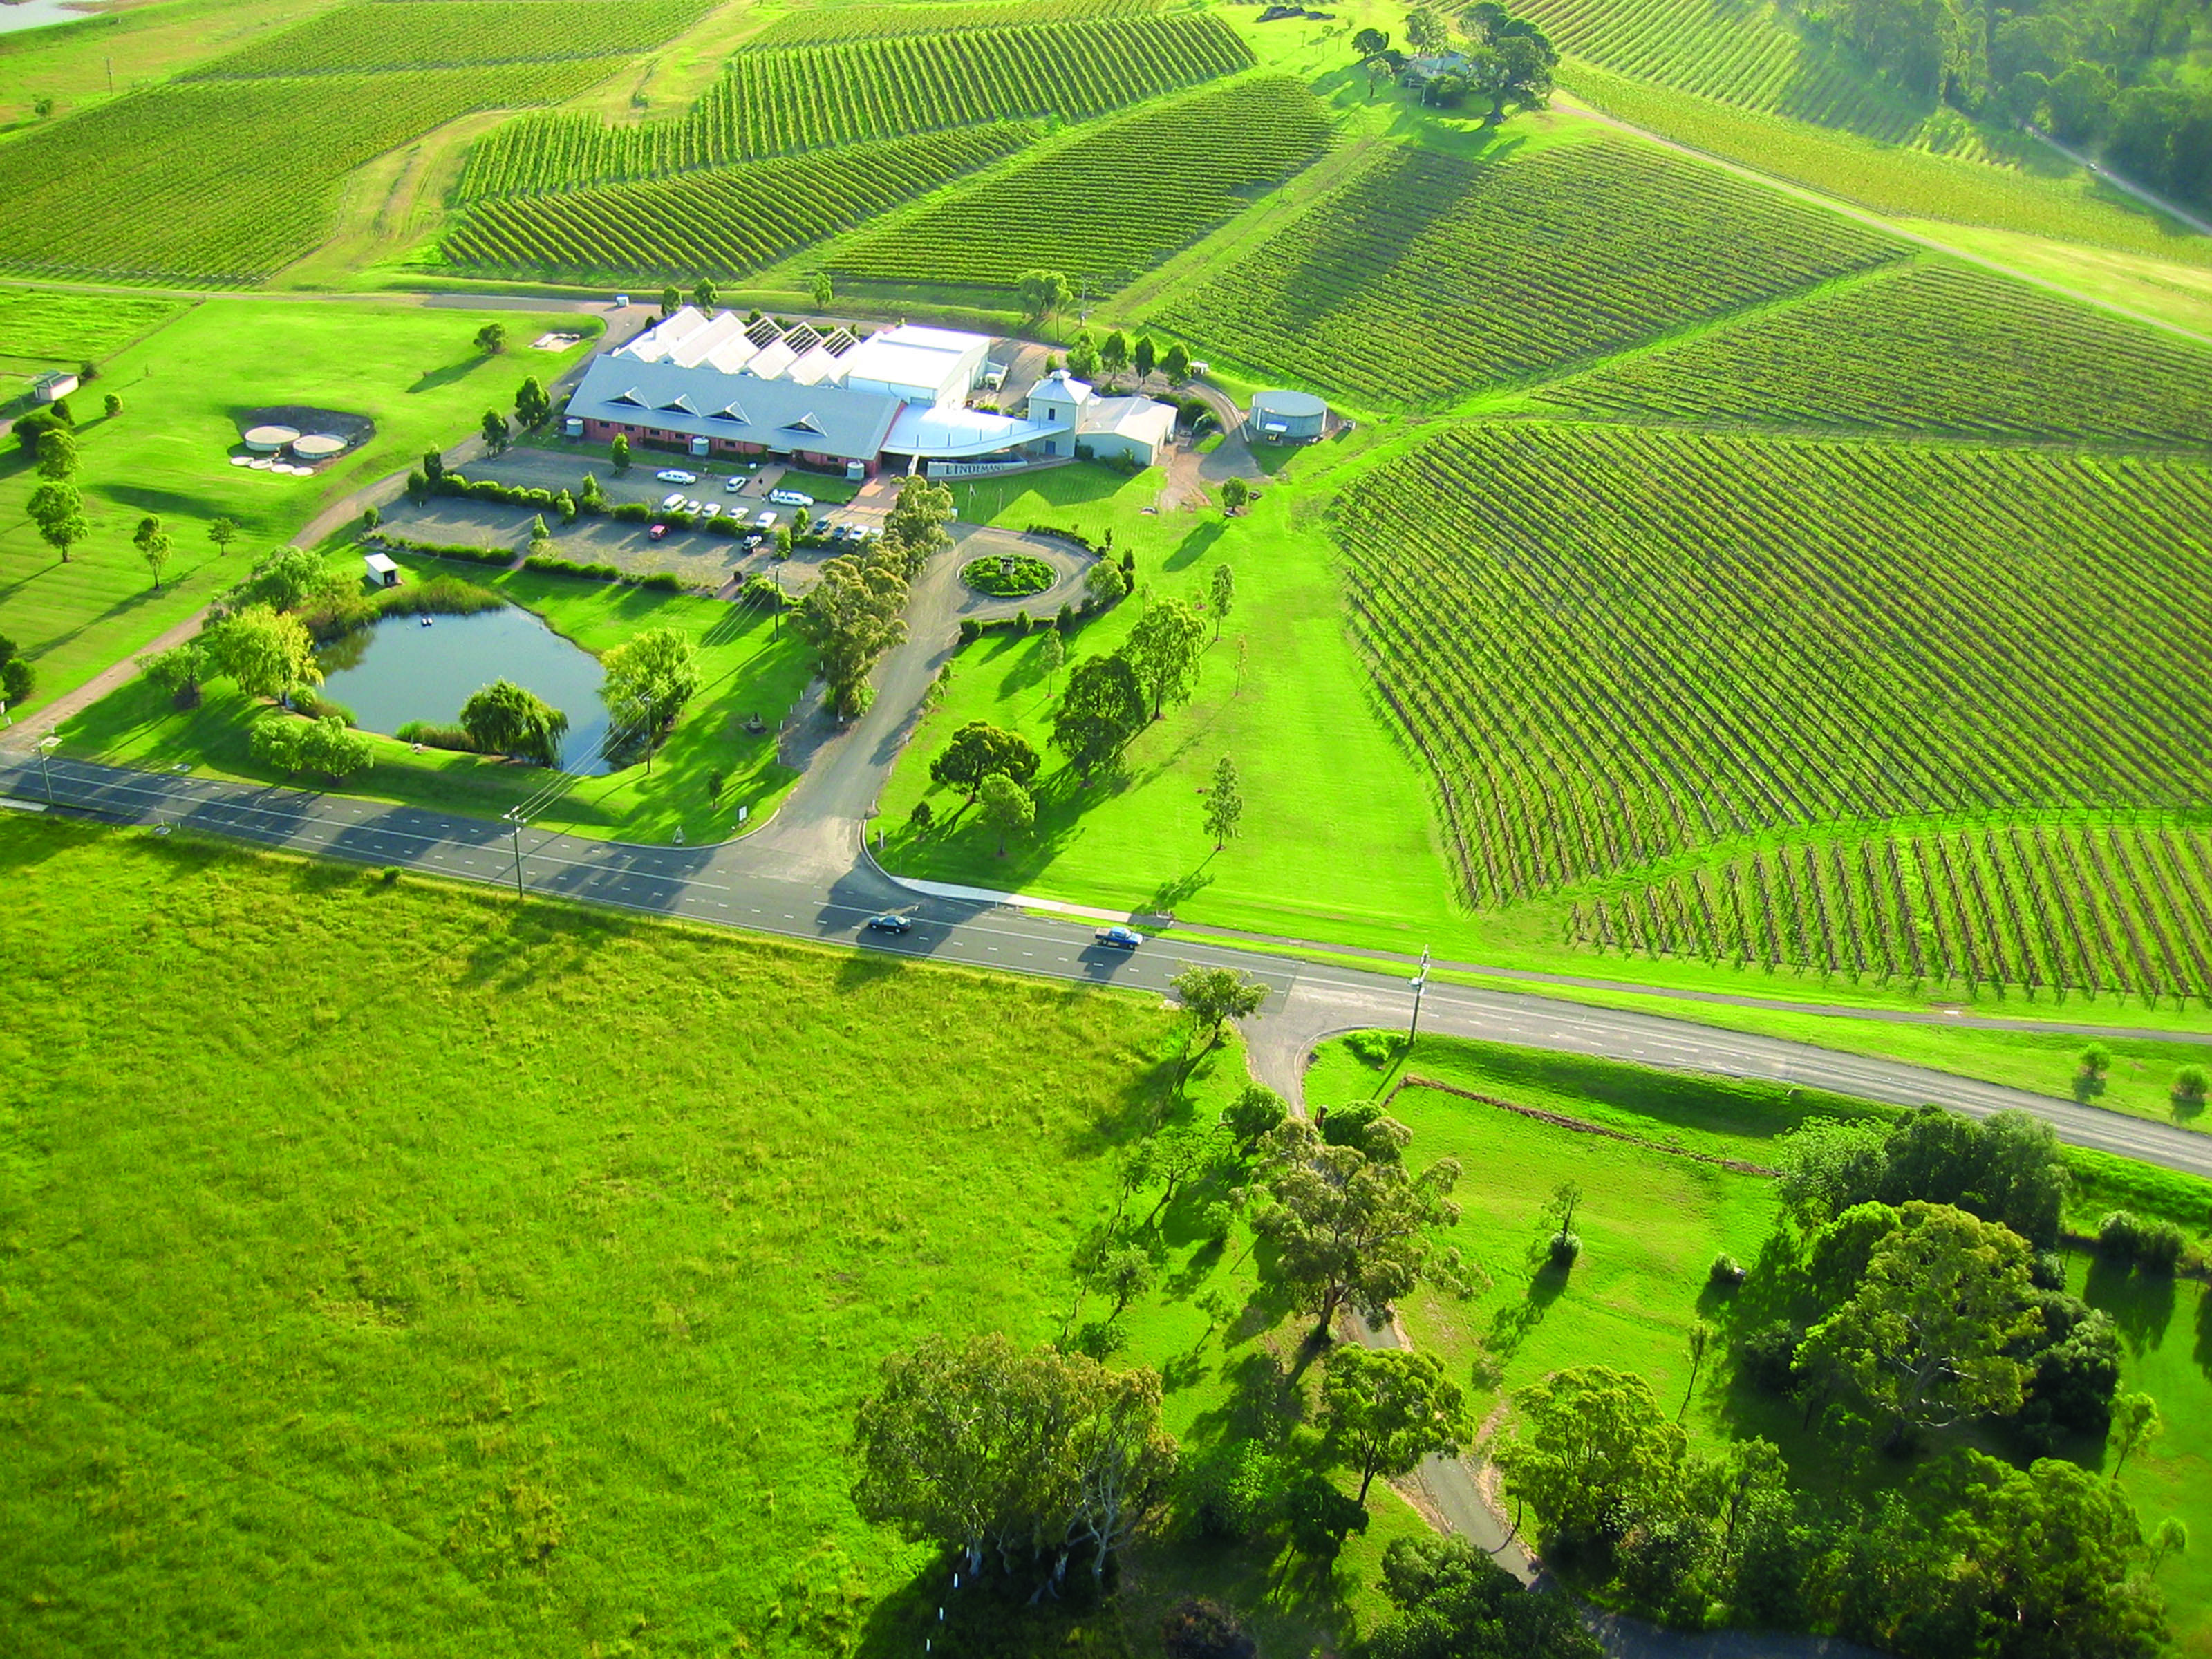 Coonawarra is a place where grapes grow for Lindeman's Coonawarra Trio.